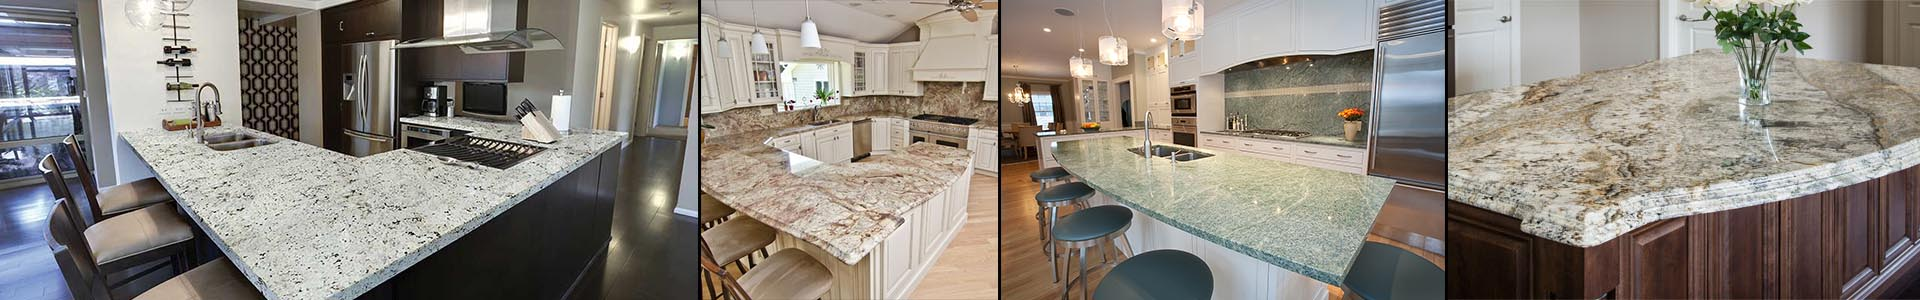 Granite-Countertops-Raleigh-Boutique